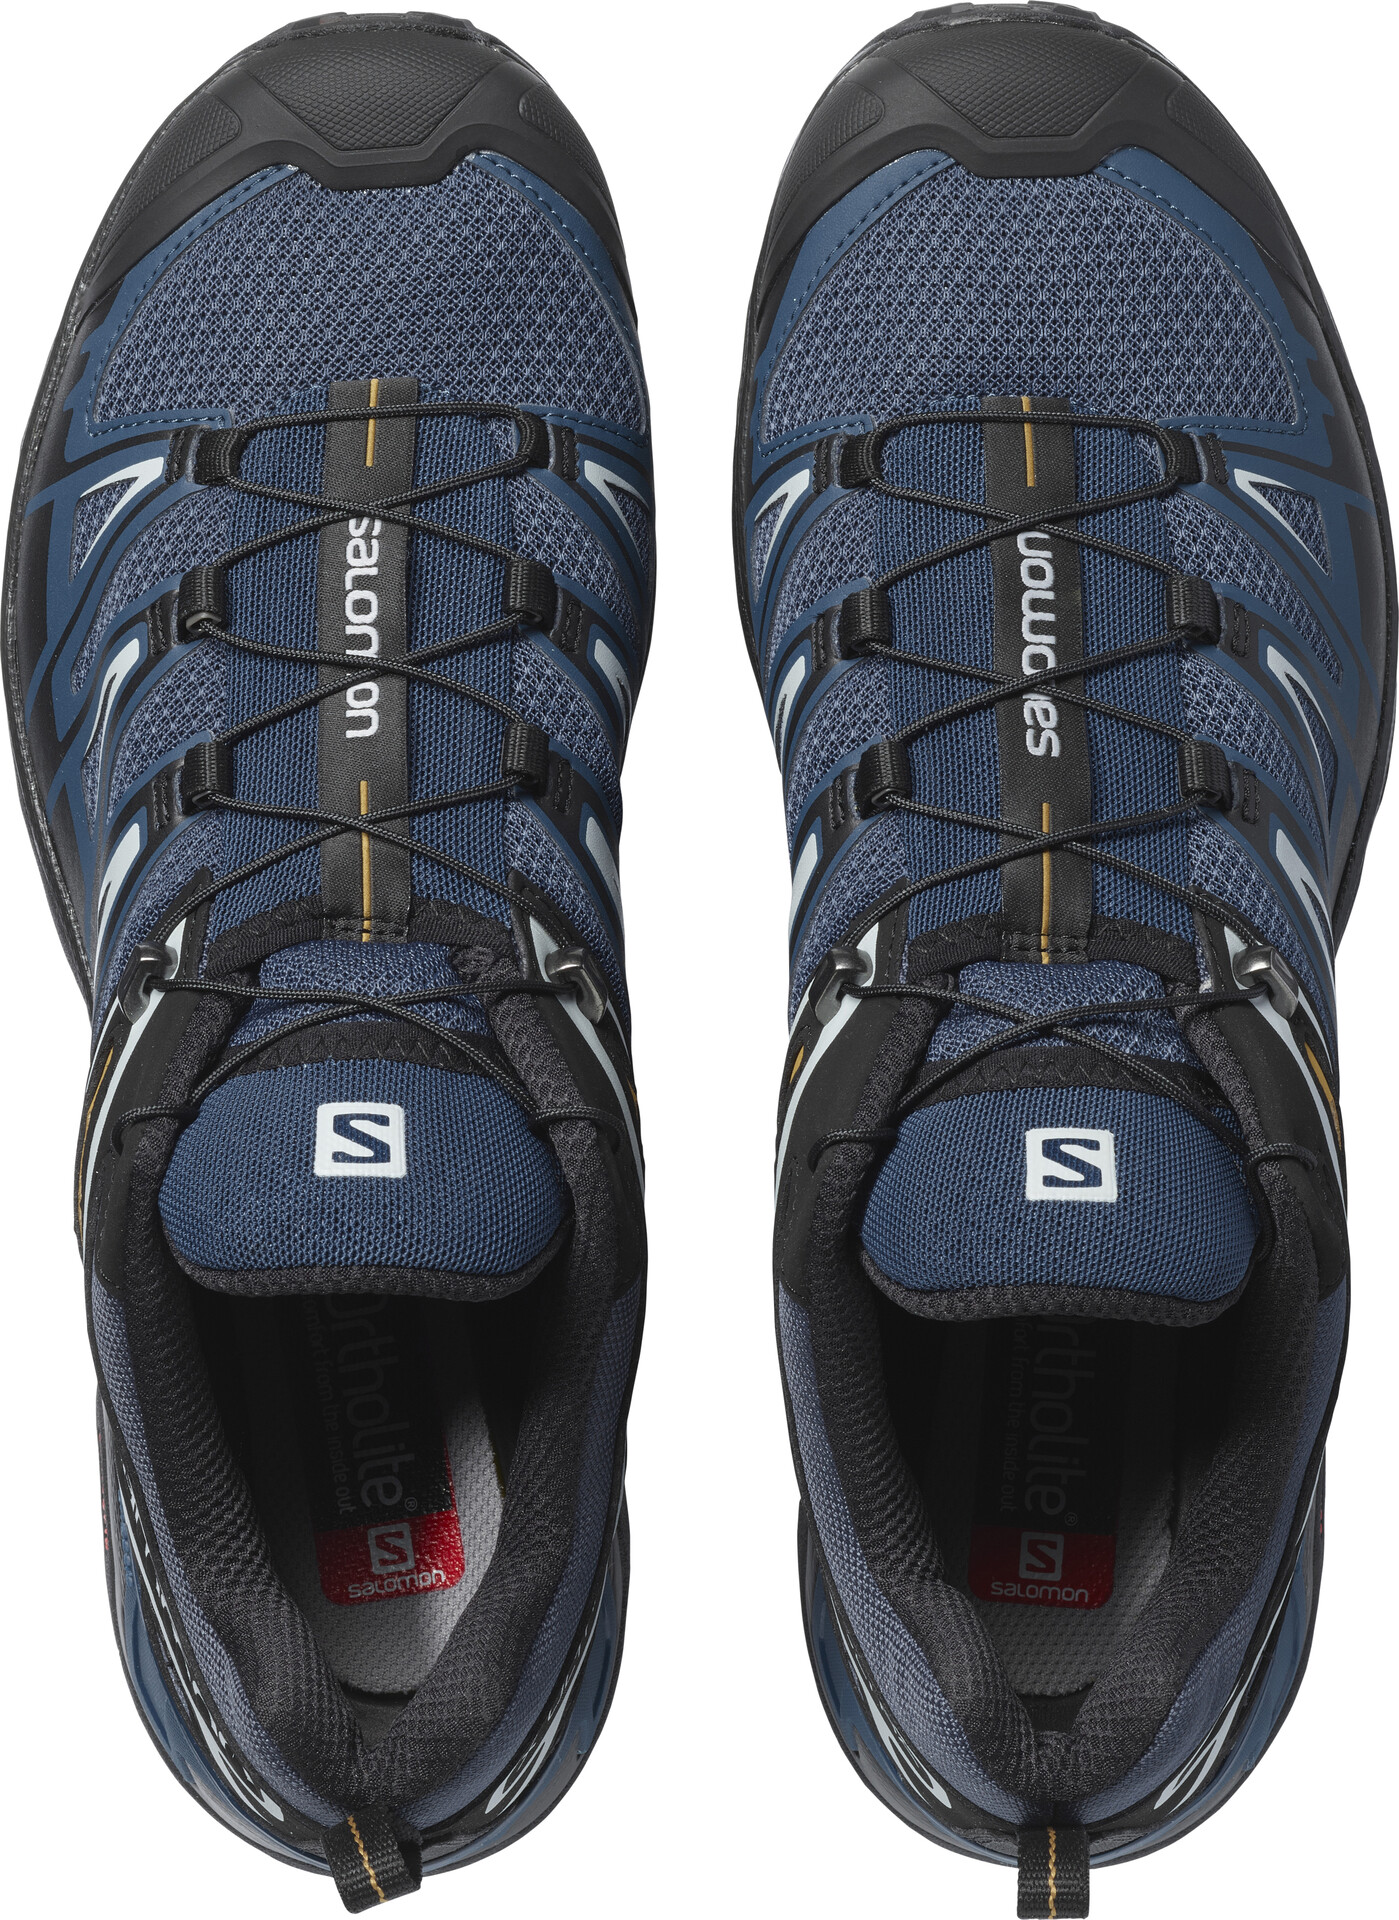 Salomon X Ultra 3 Scarpe Uomo, dark denim/black/cumin su Addnature f1RUb